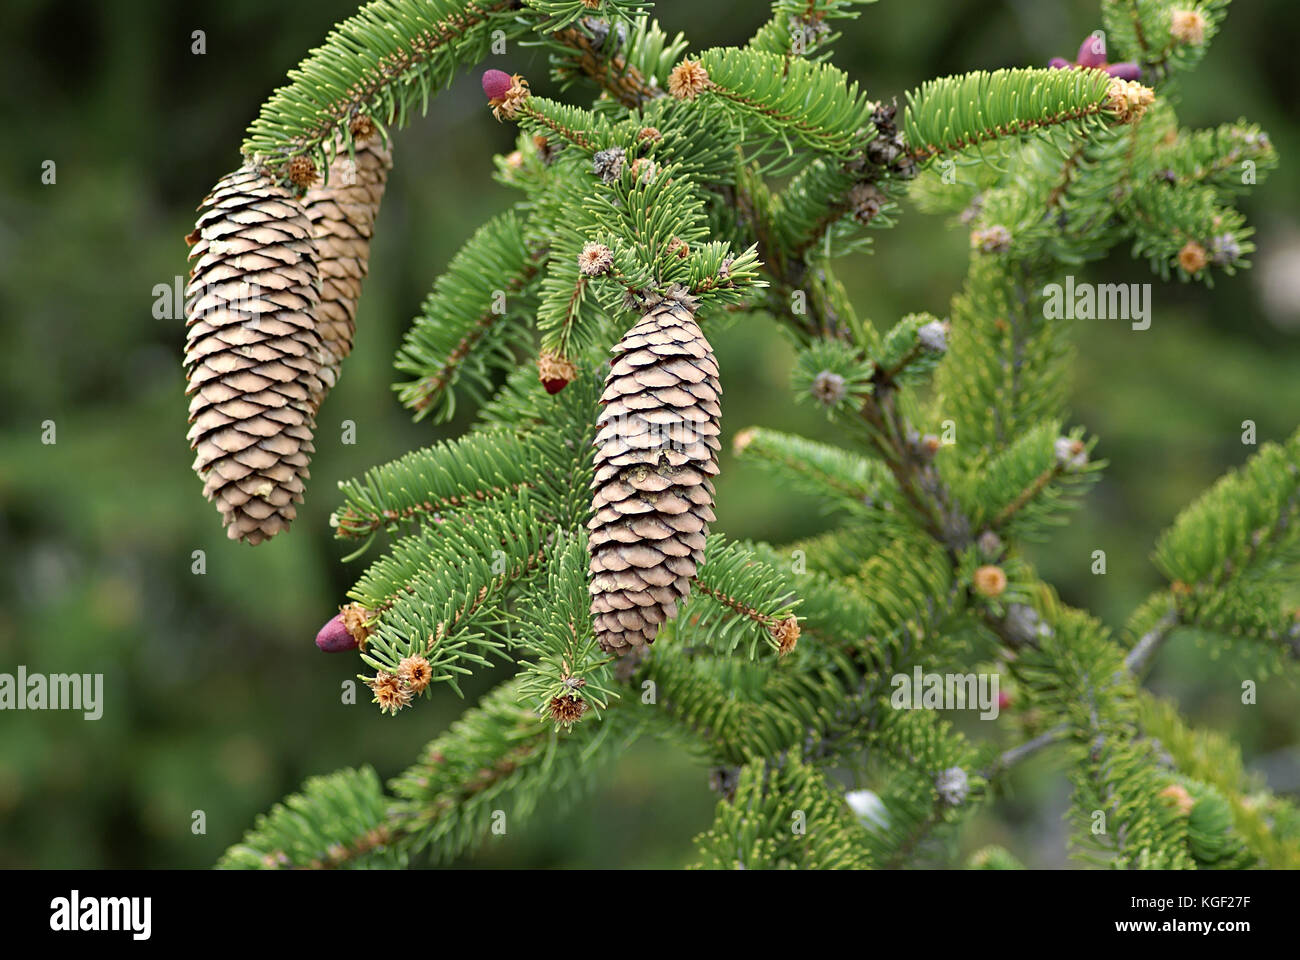 Cones on a Norway Spruce (Picea abies) branch, often used as Christmas tree. Autumn season in a southern alps forest - Stock Image